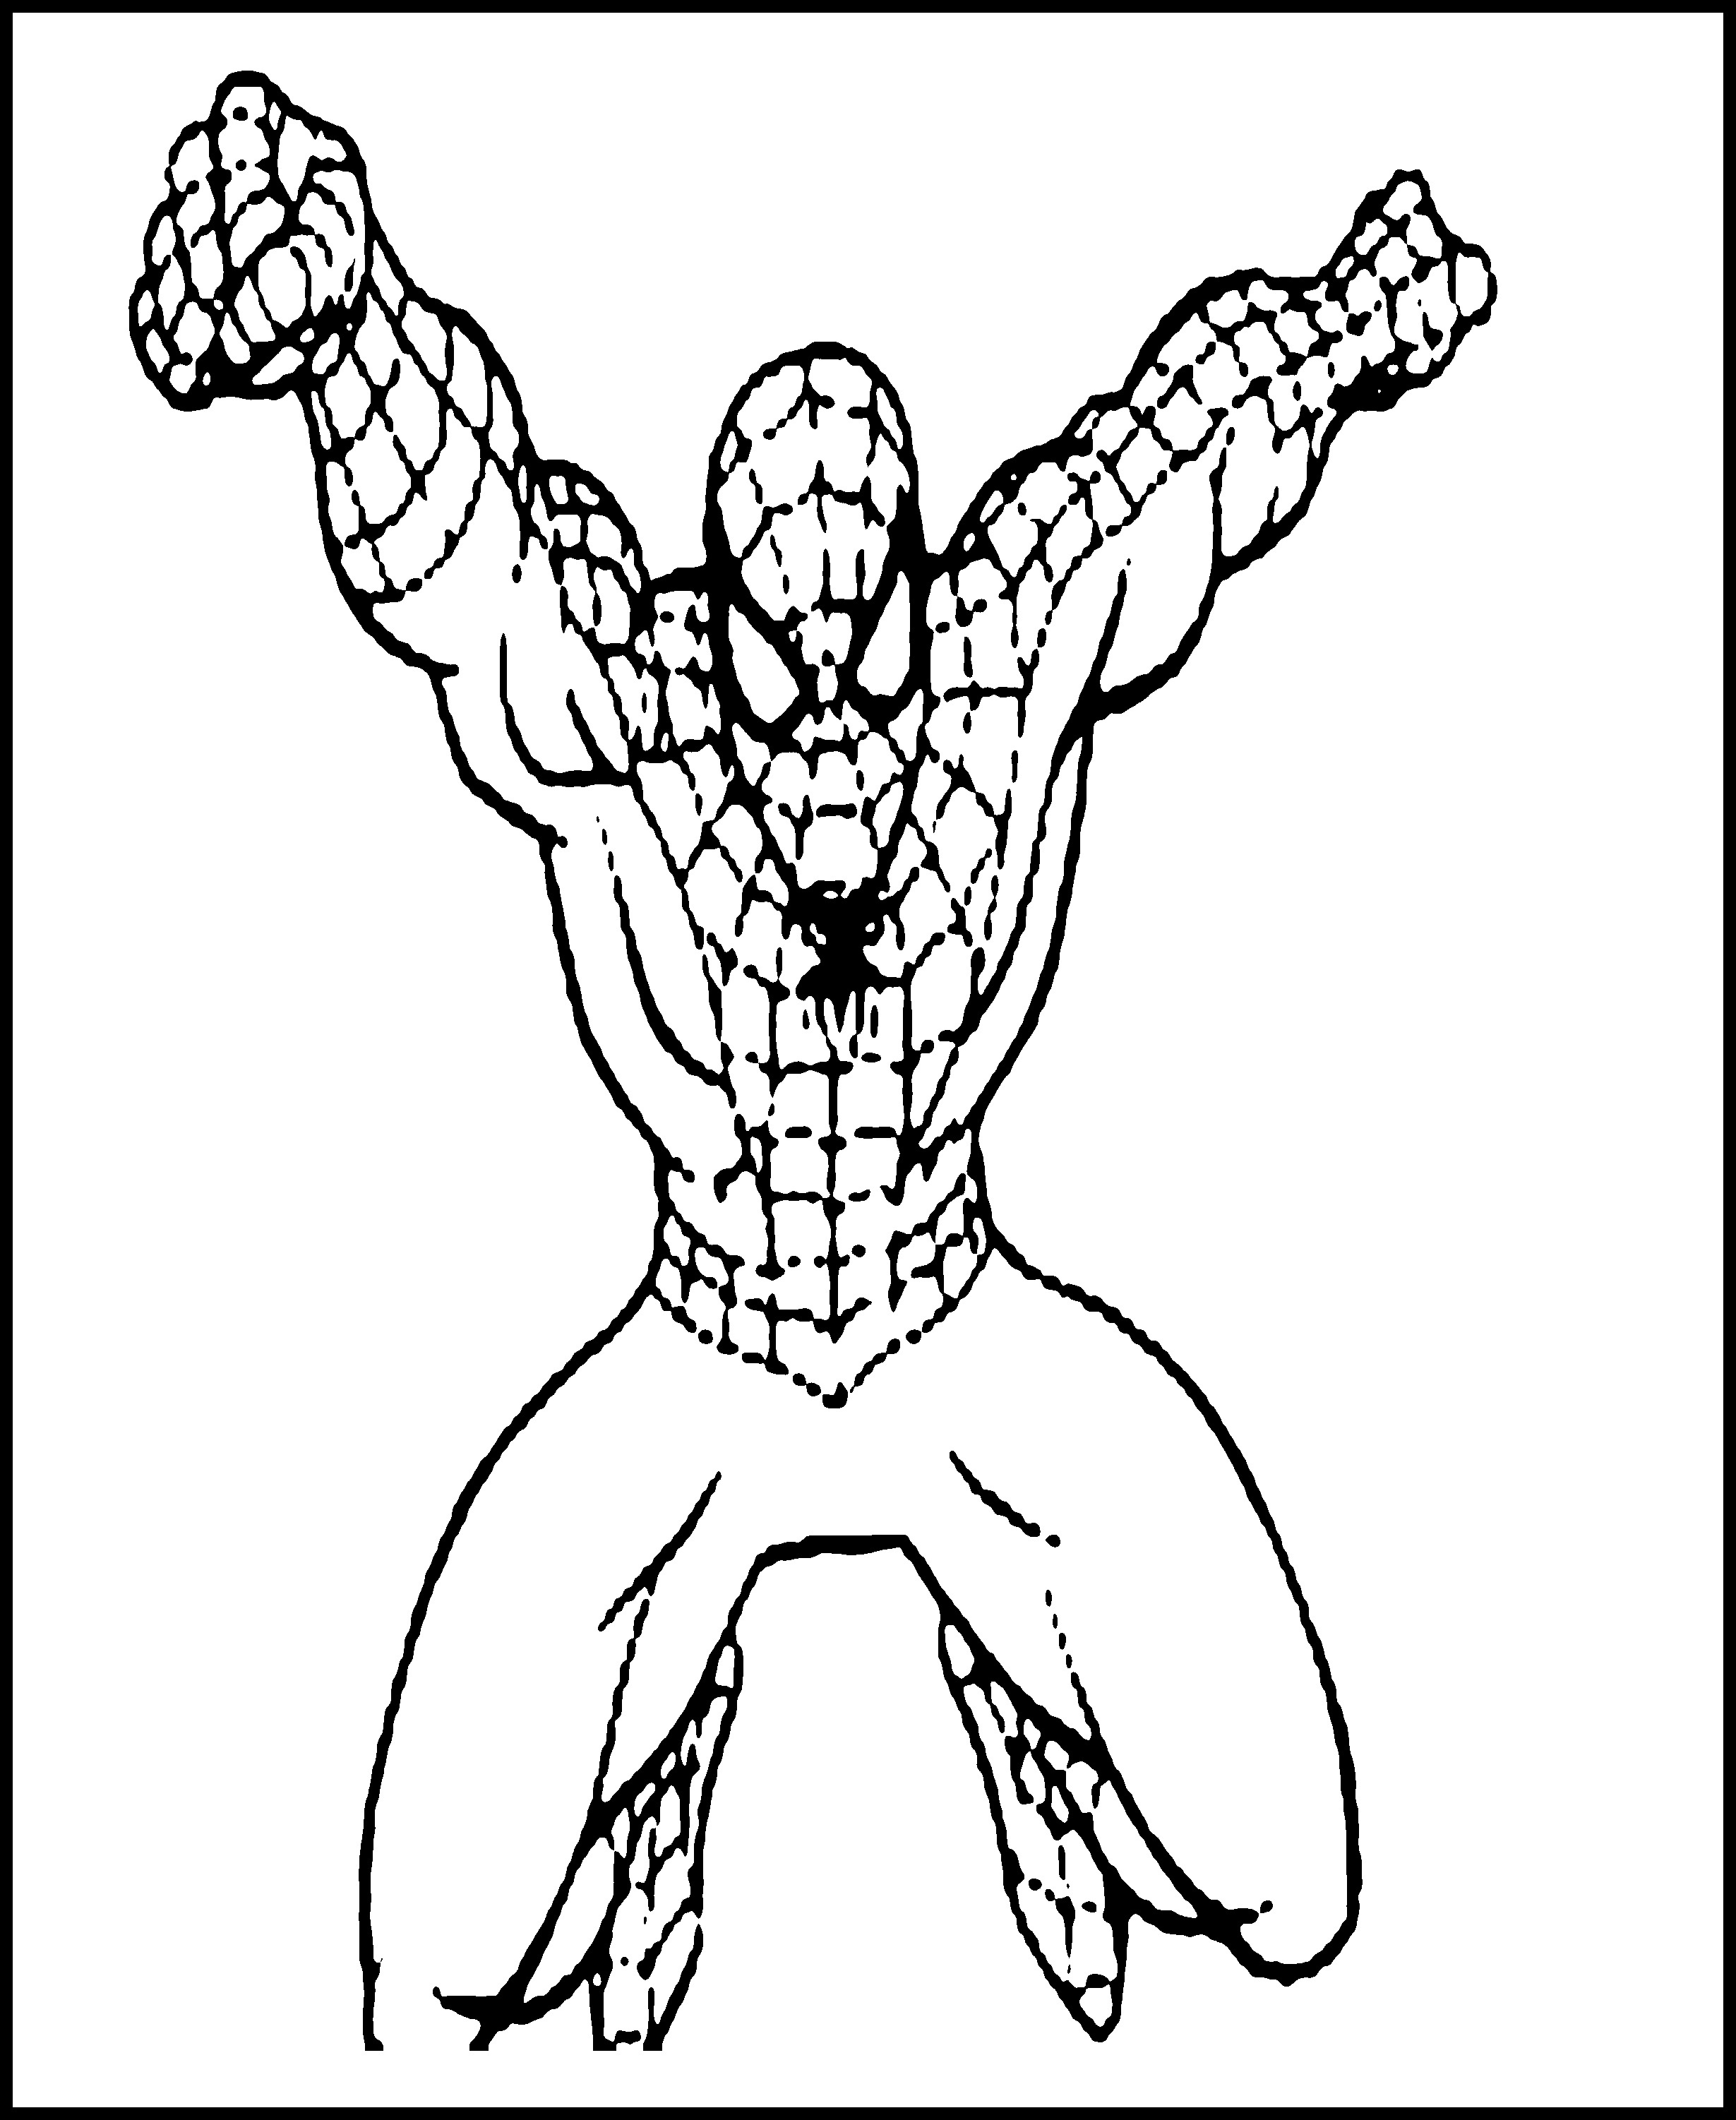 Free Printable Spiderman Coloring Pages For Kids - Man In The Arena Free Printable